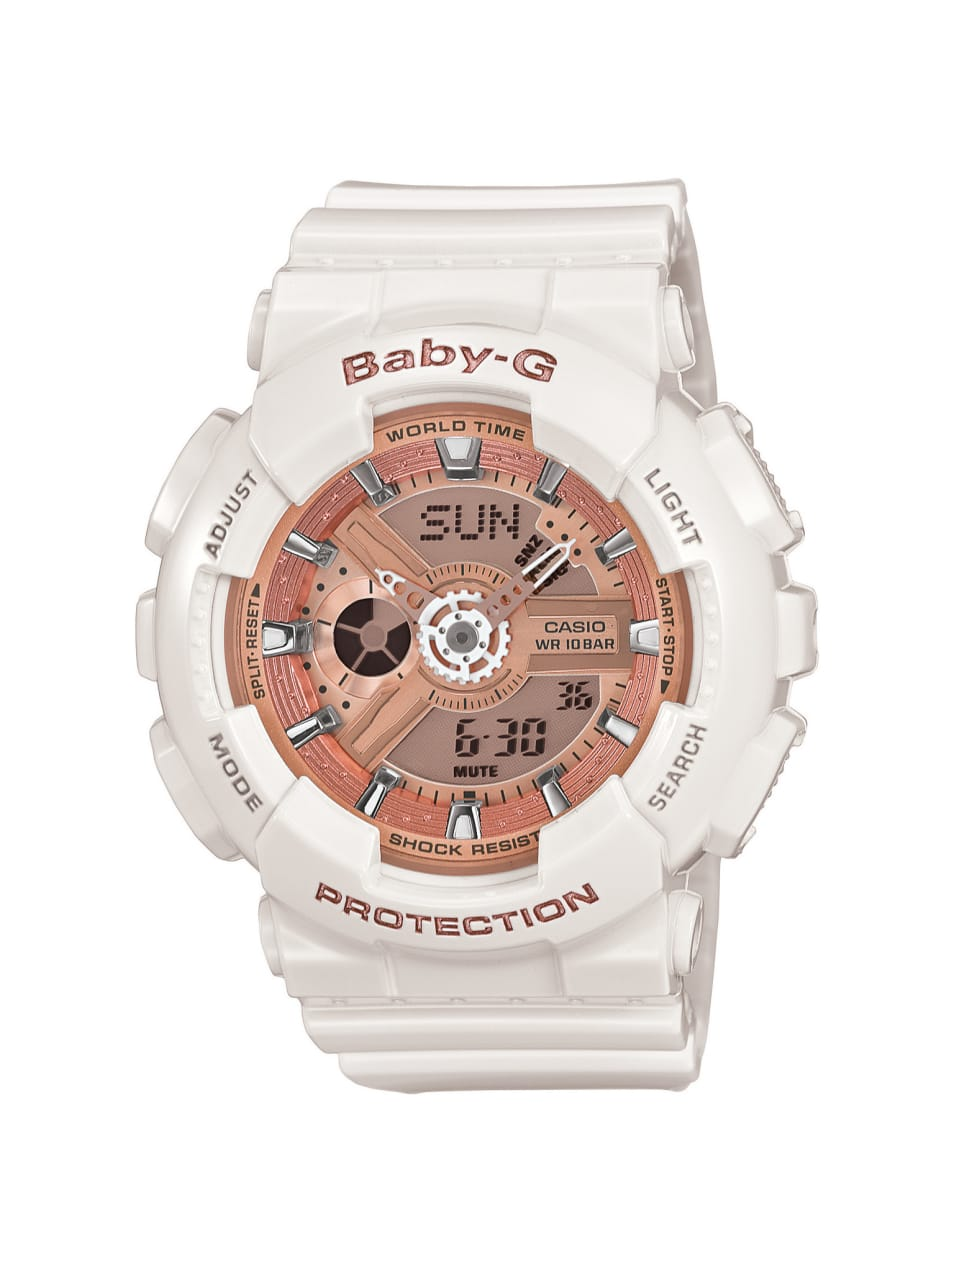 BABY-G BA-110-7A1JF